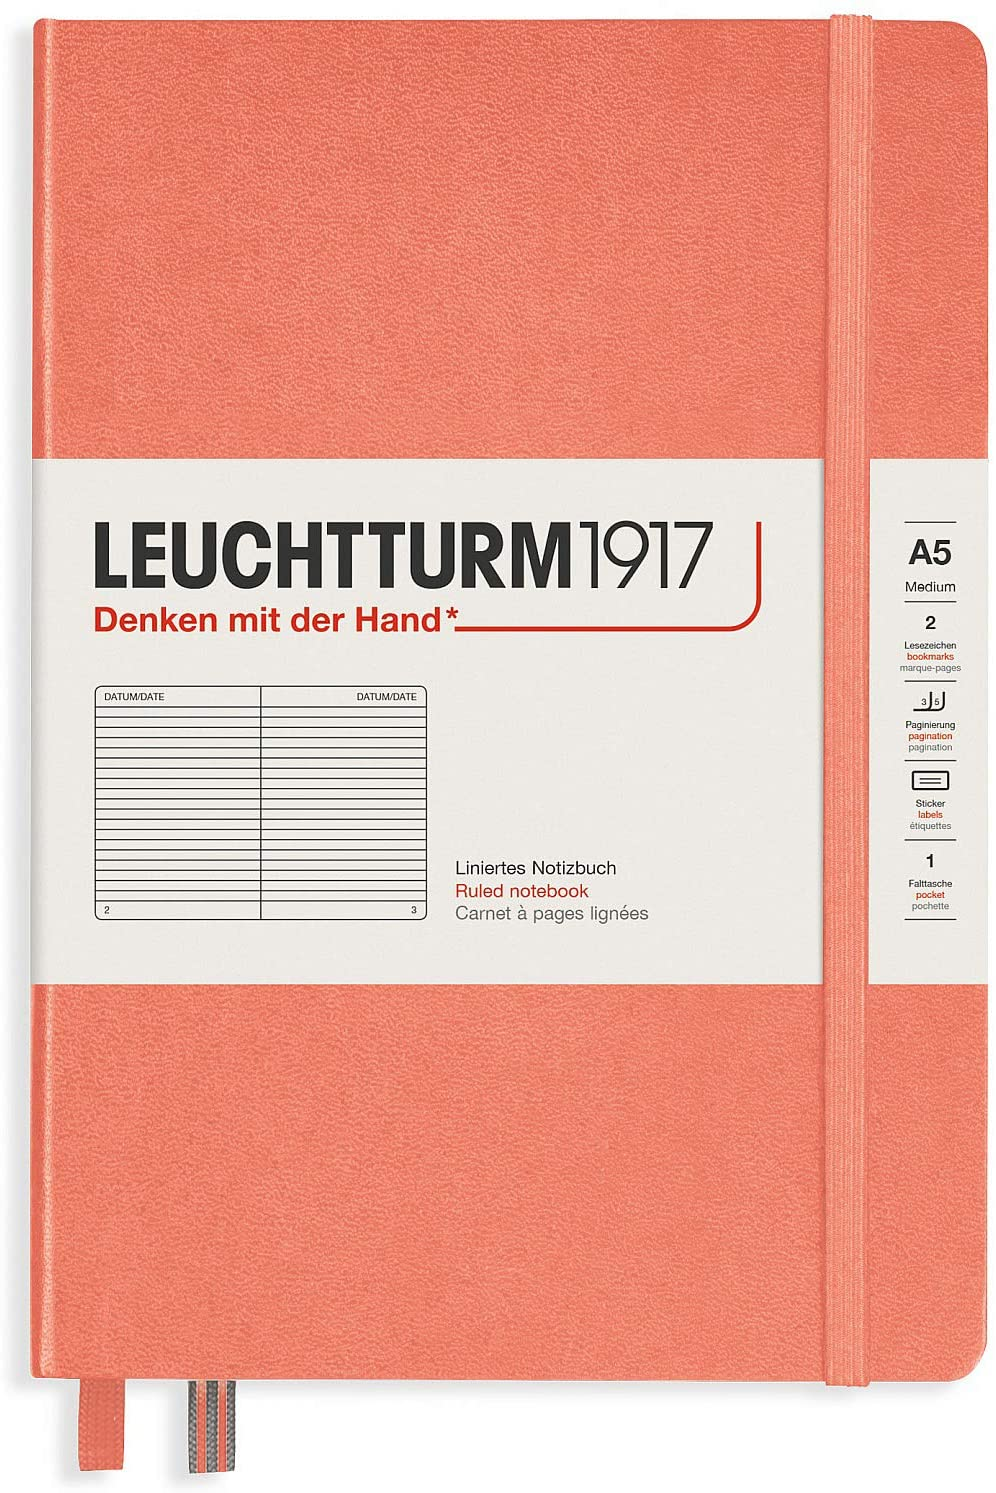 Leuchtturm1917 Special Edition Muted Colors Hardcover A5 Medium Lined Notebook - Bellini